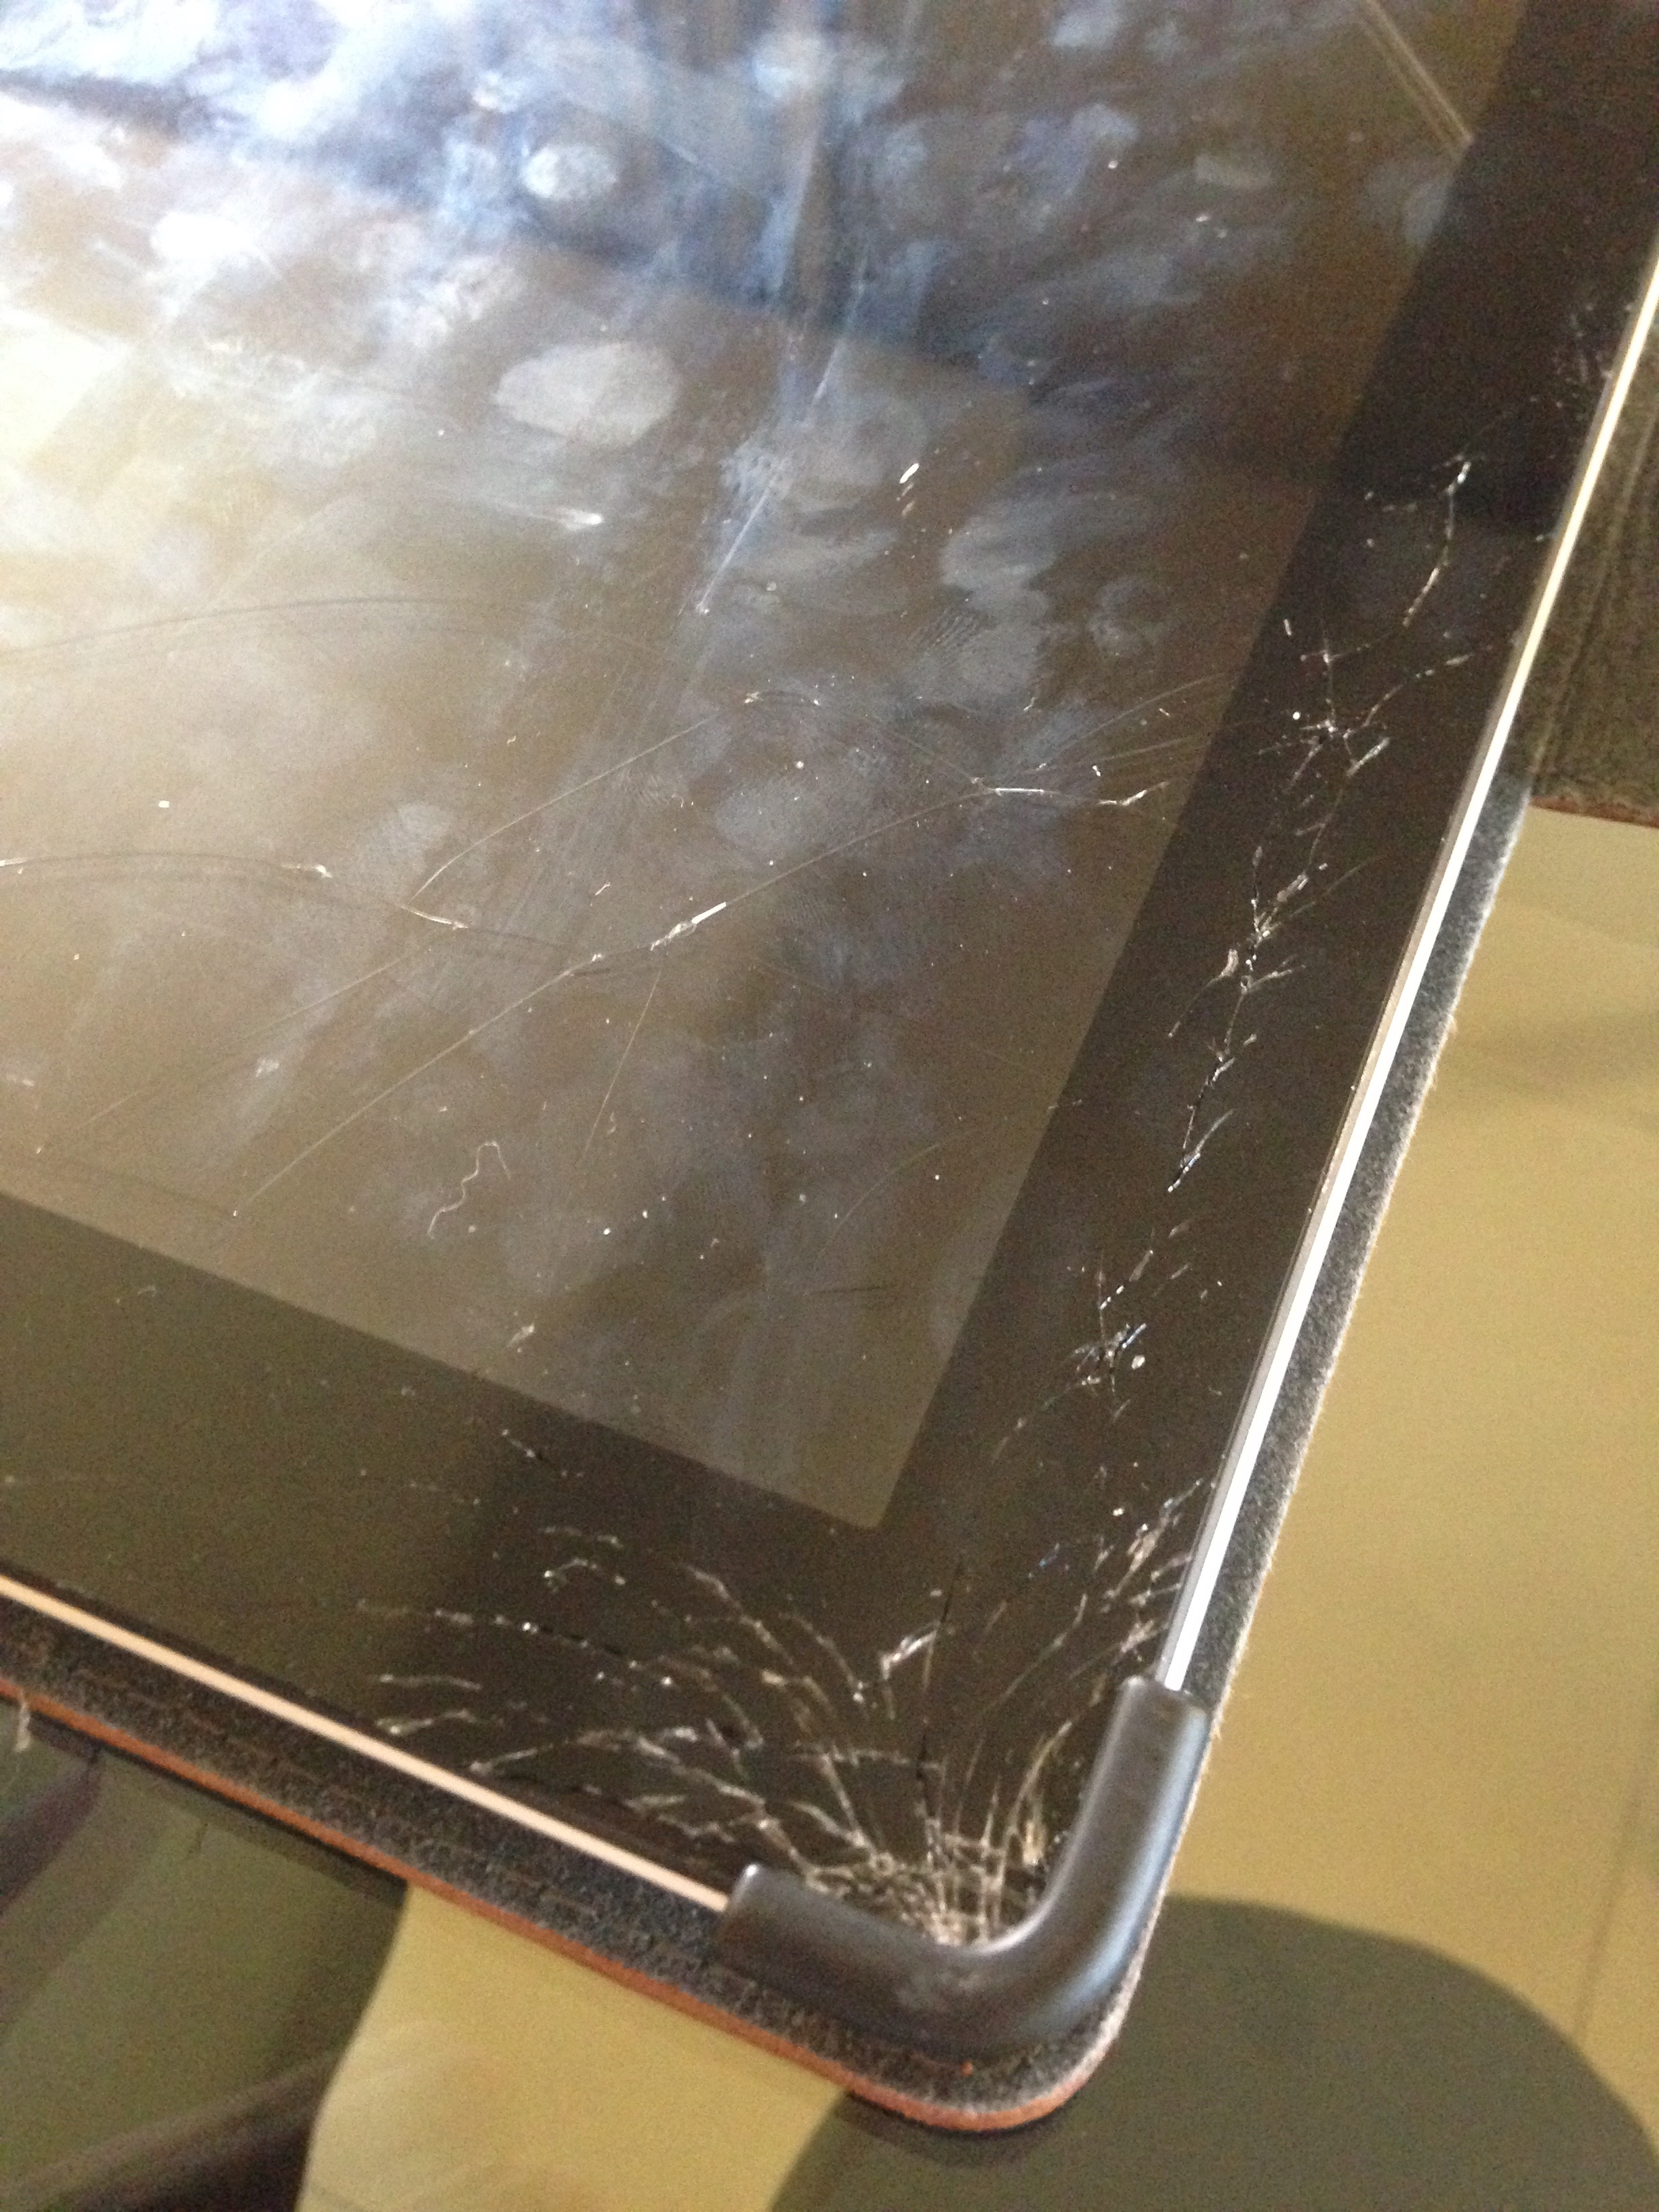 My Son Cracked The Glass on our Family iPad